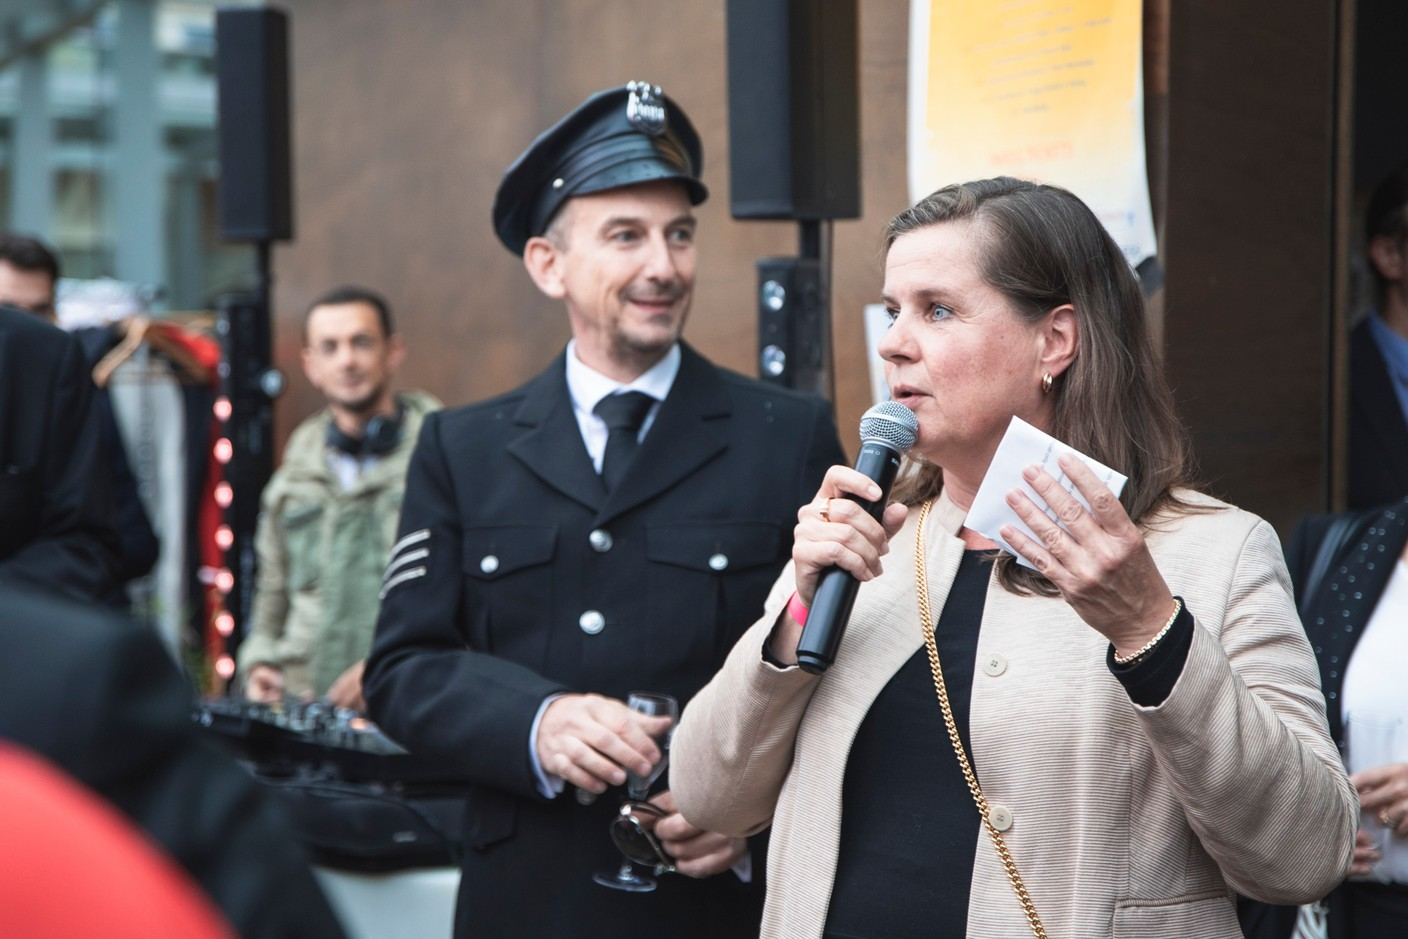 Geraldine Knudson, CEO of Maison Moderne, the company that publishes Delano, is seen speaking during Delano's 10th anniversary party, 13 July 2021. Simon Verjus/Maison Moderne